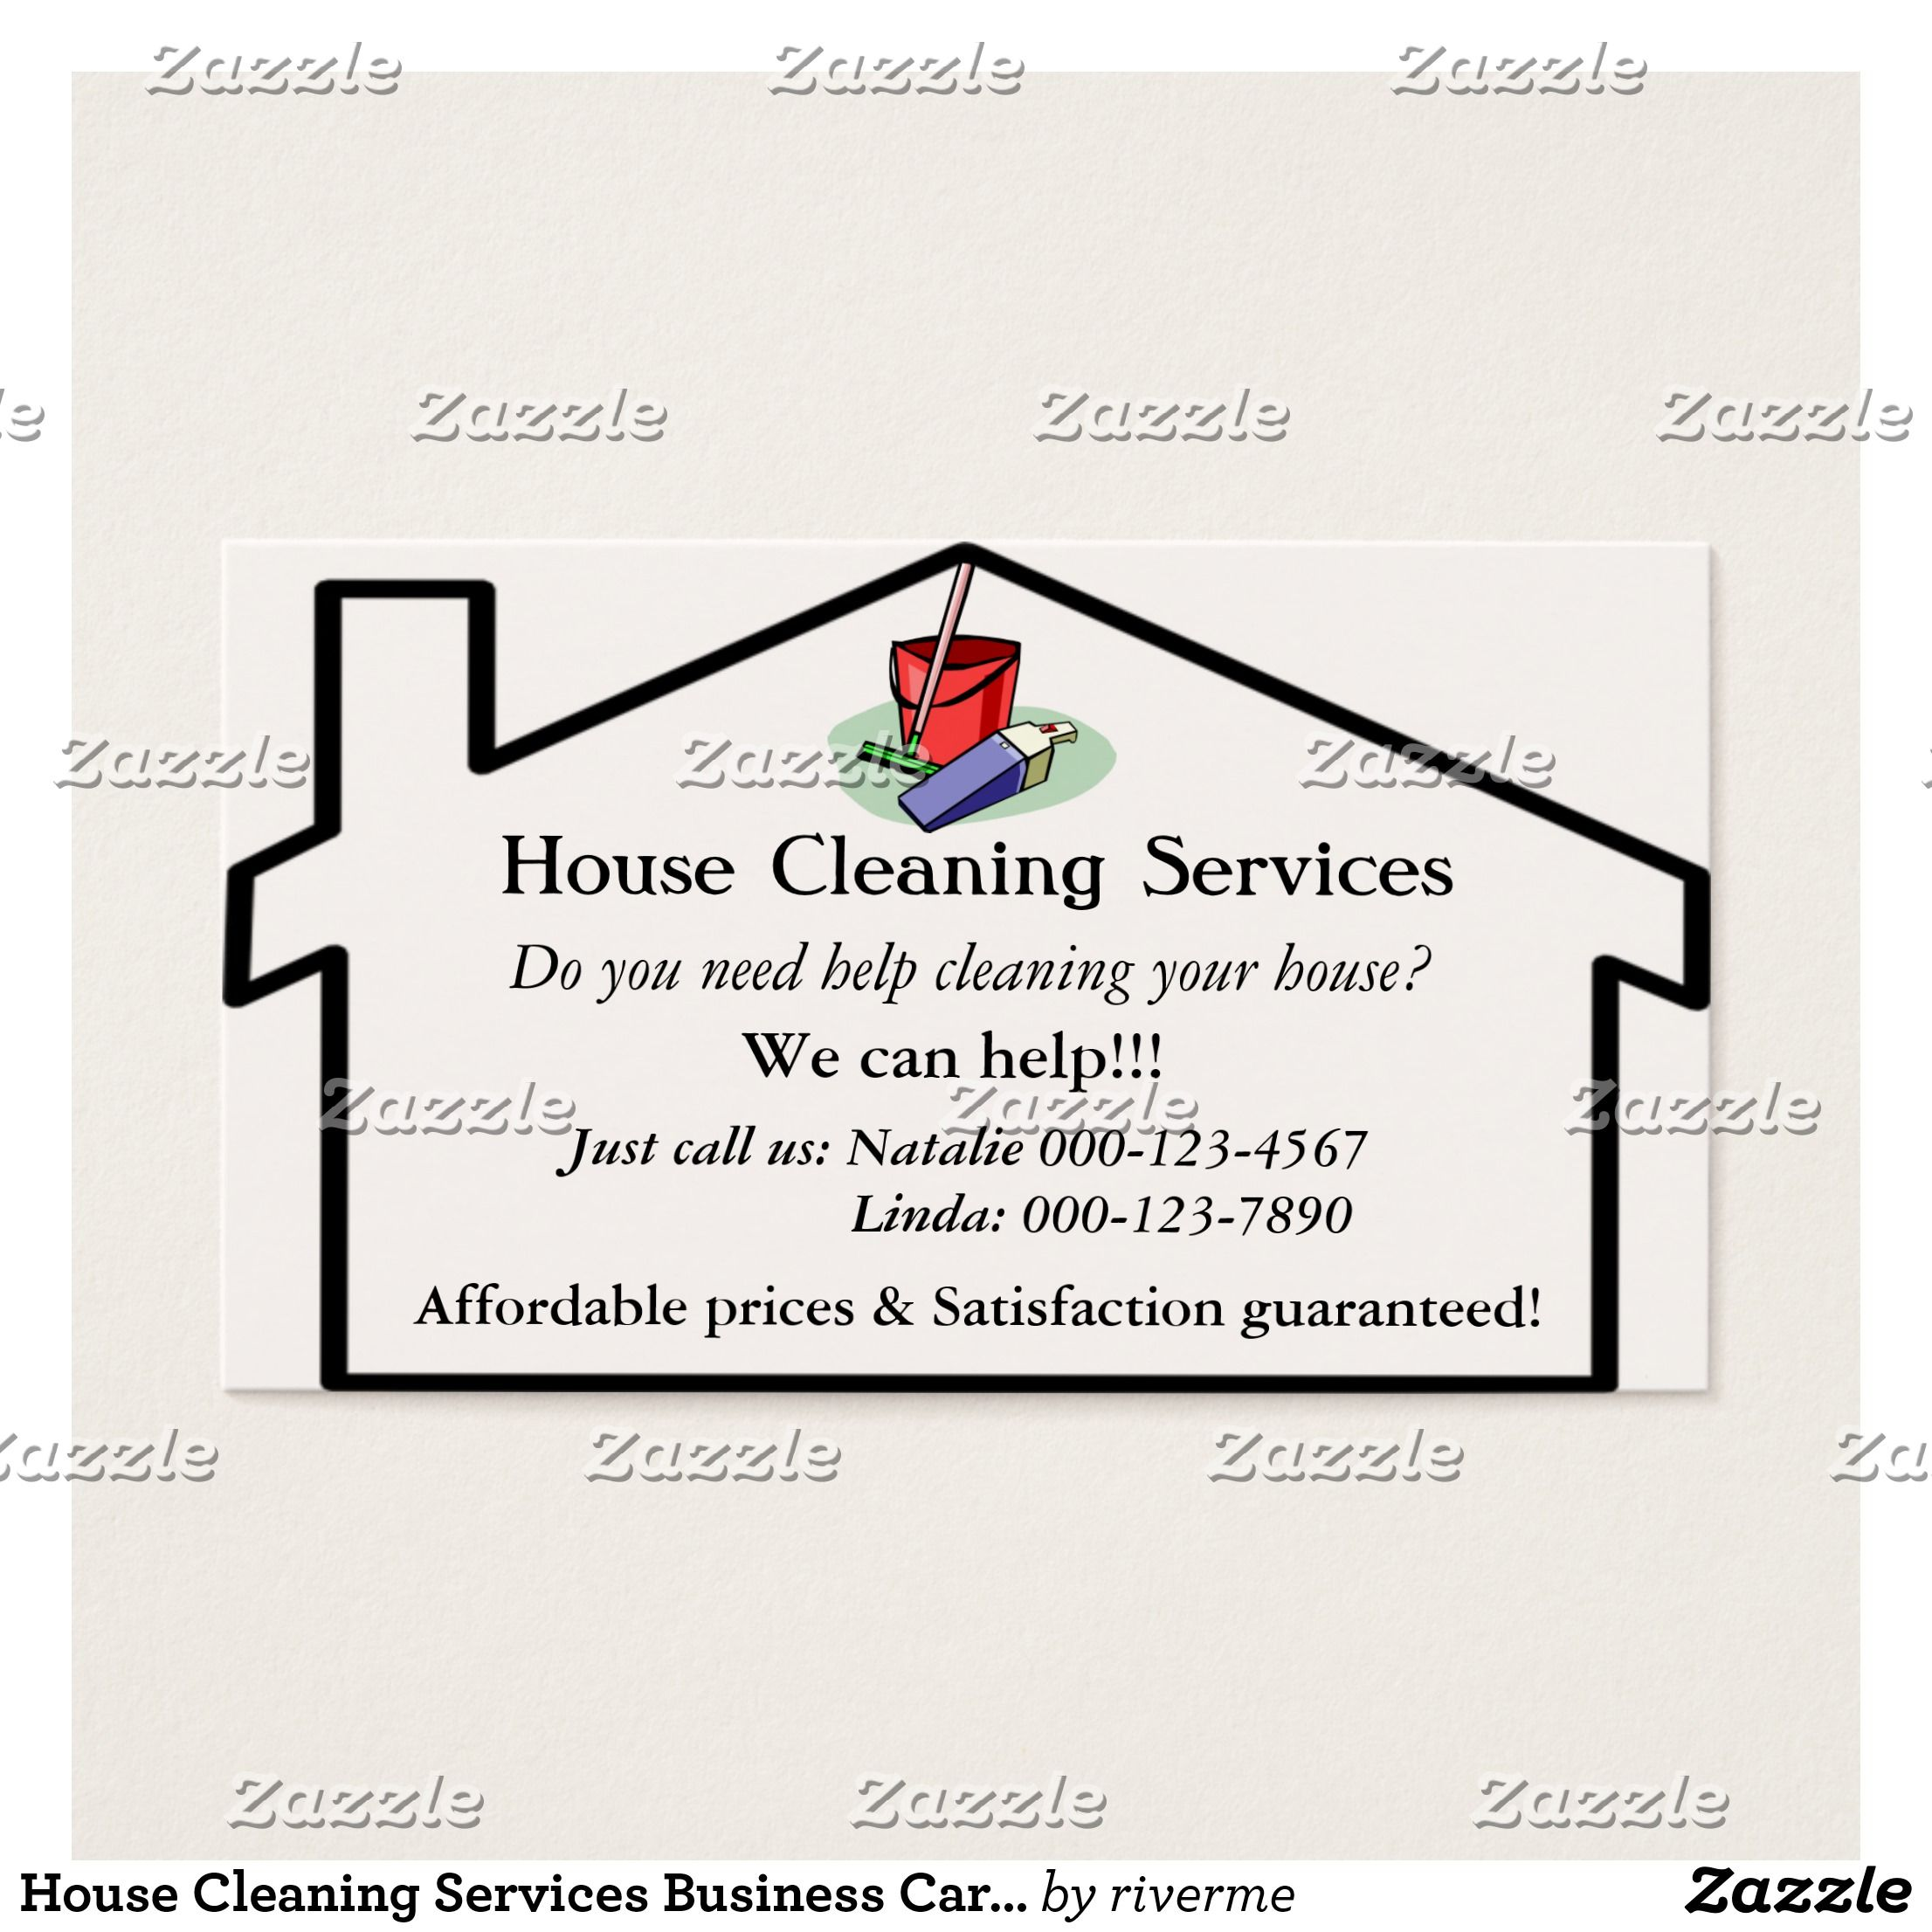 House Cleaning Services Business Card Template | Neat stuff ...